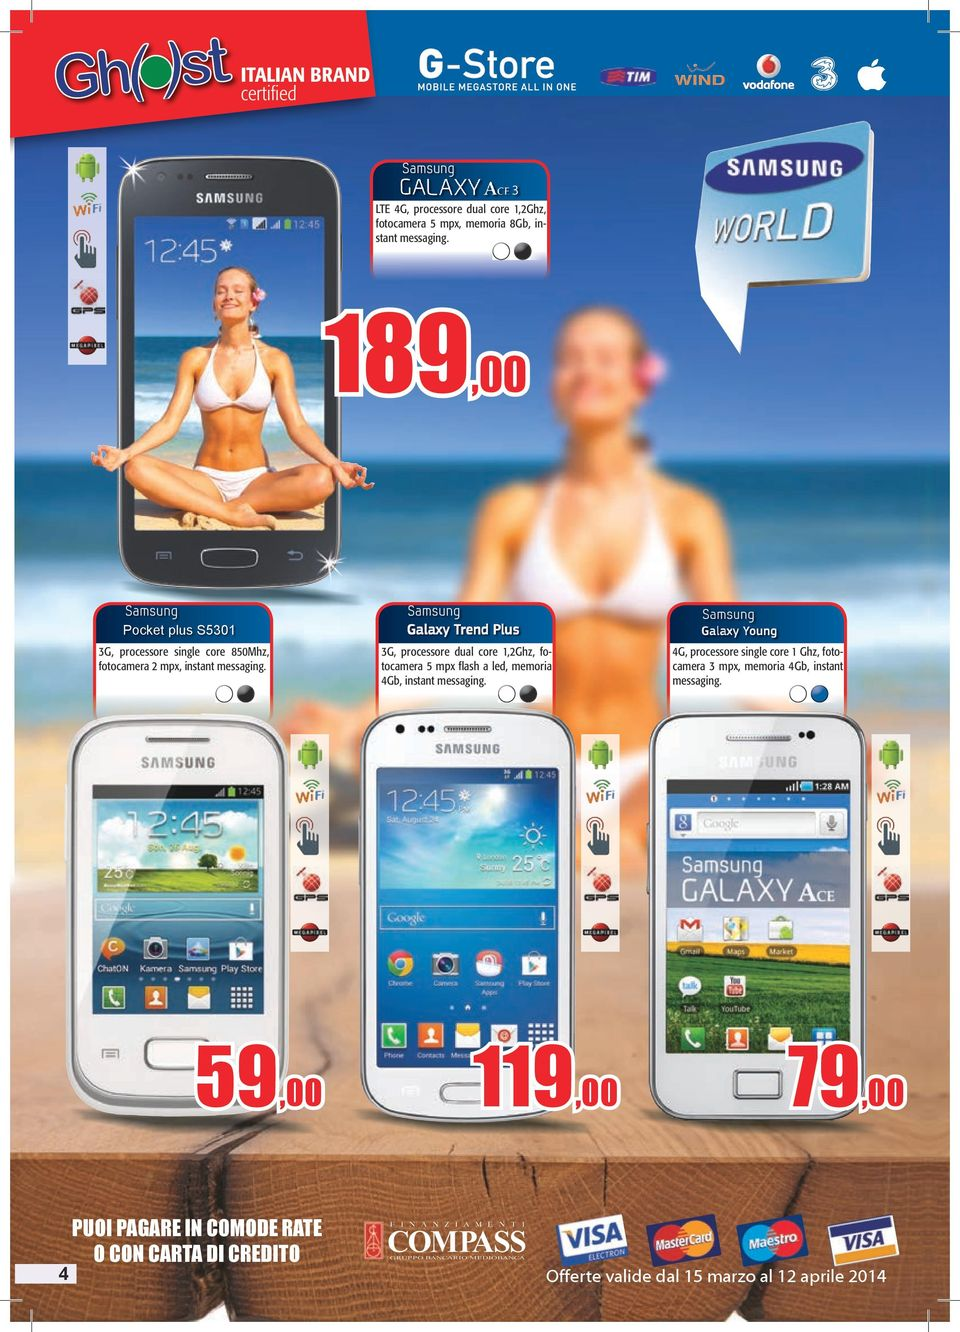 3G, processore dual core 1,2Ghz, fotocamera 5 mpx flash a led, memoria 4Gb, instant messaging.